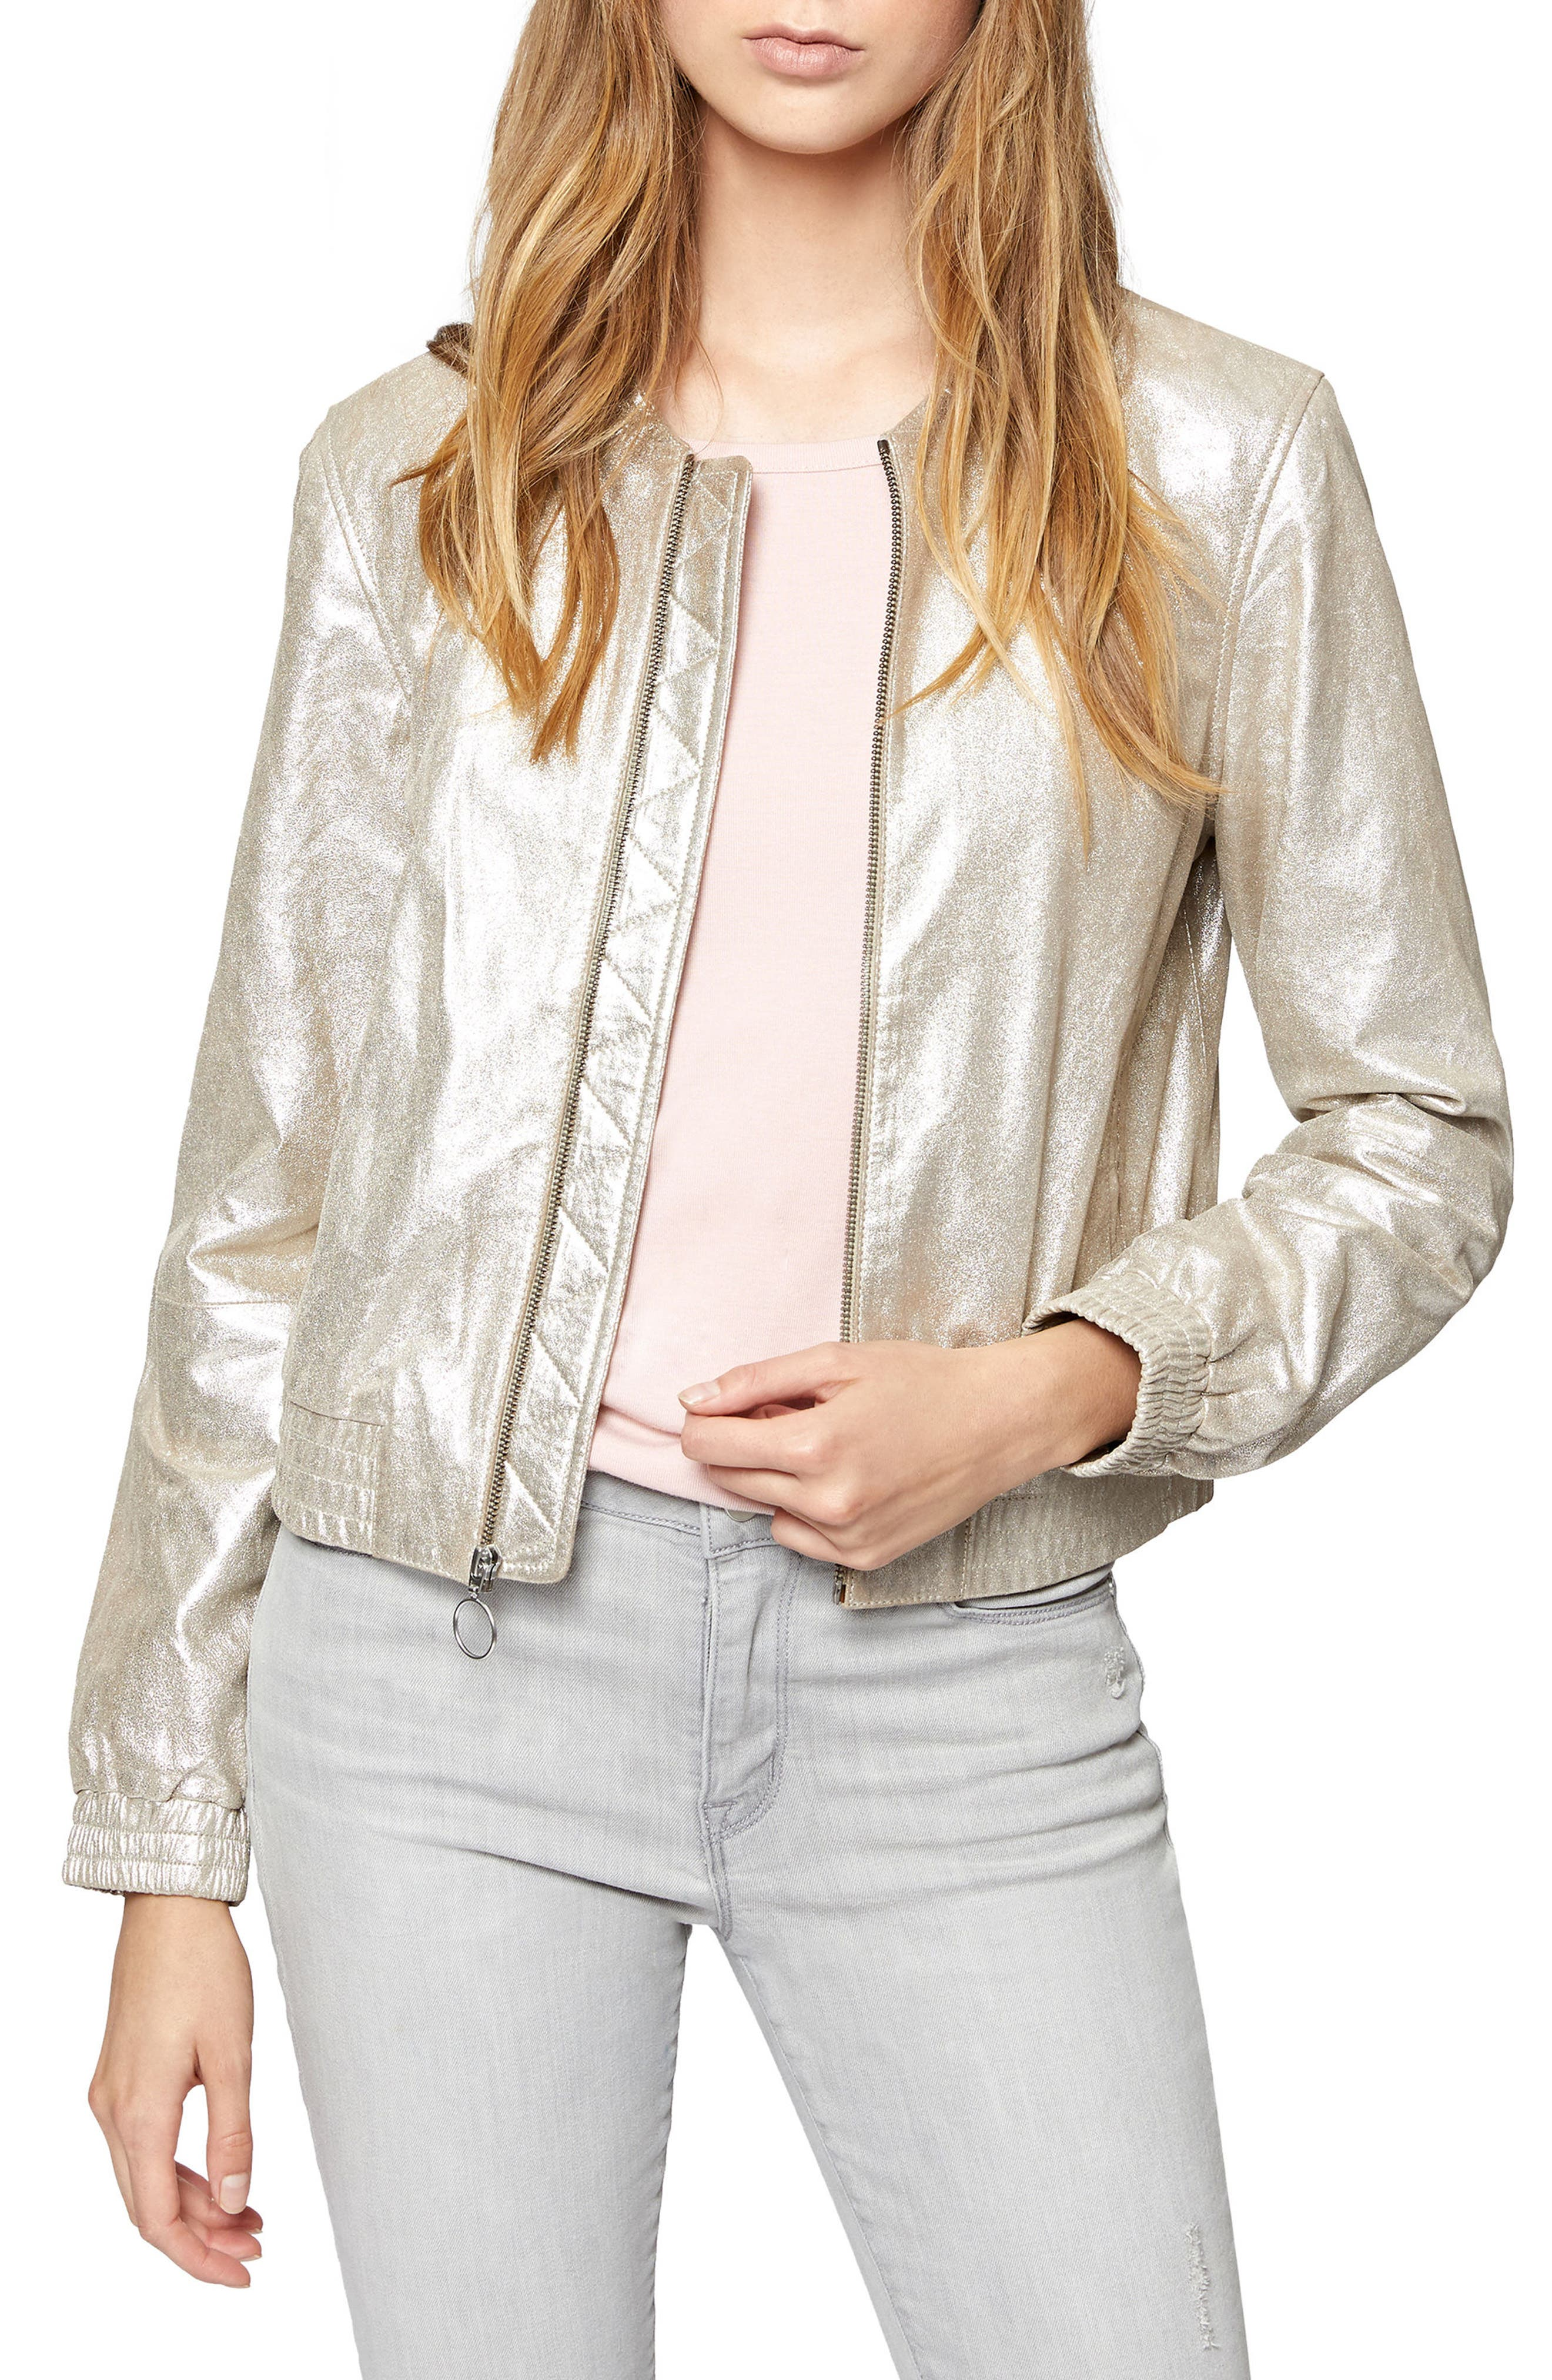 Cool Gang Metallic Leather Bomber Jacket,                             Main thumbnail 1, color,                             040